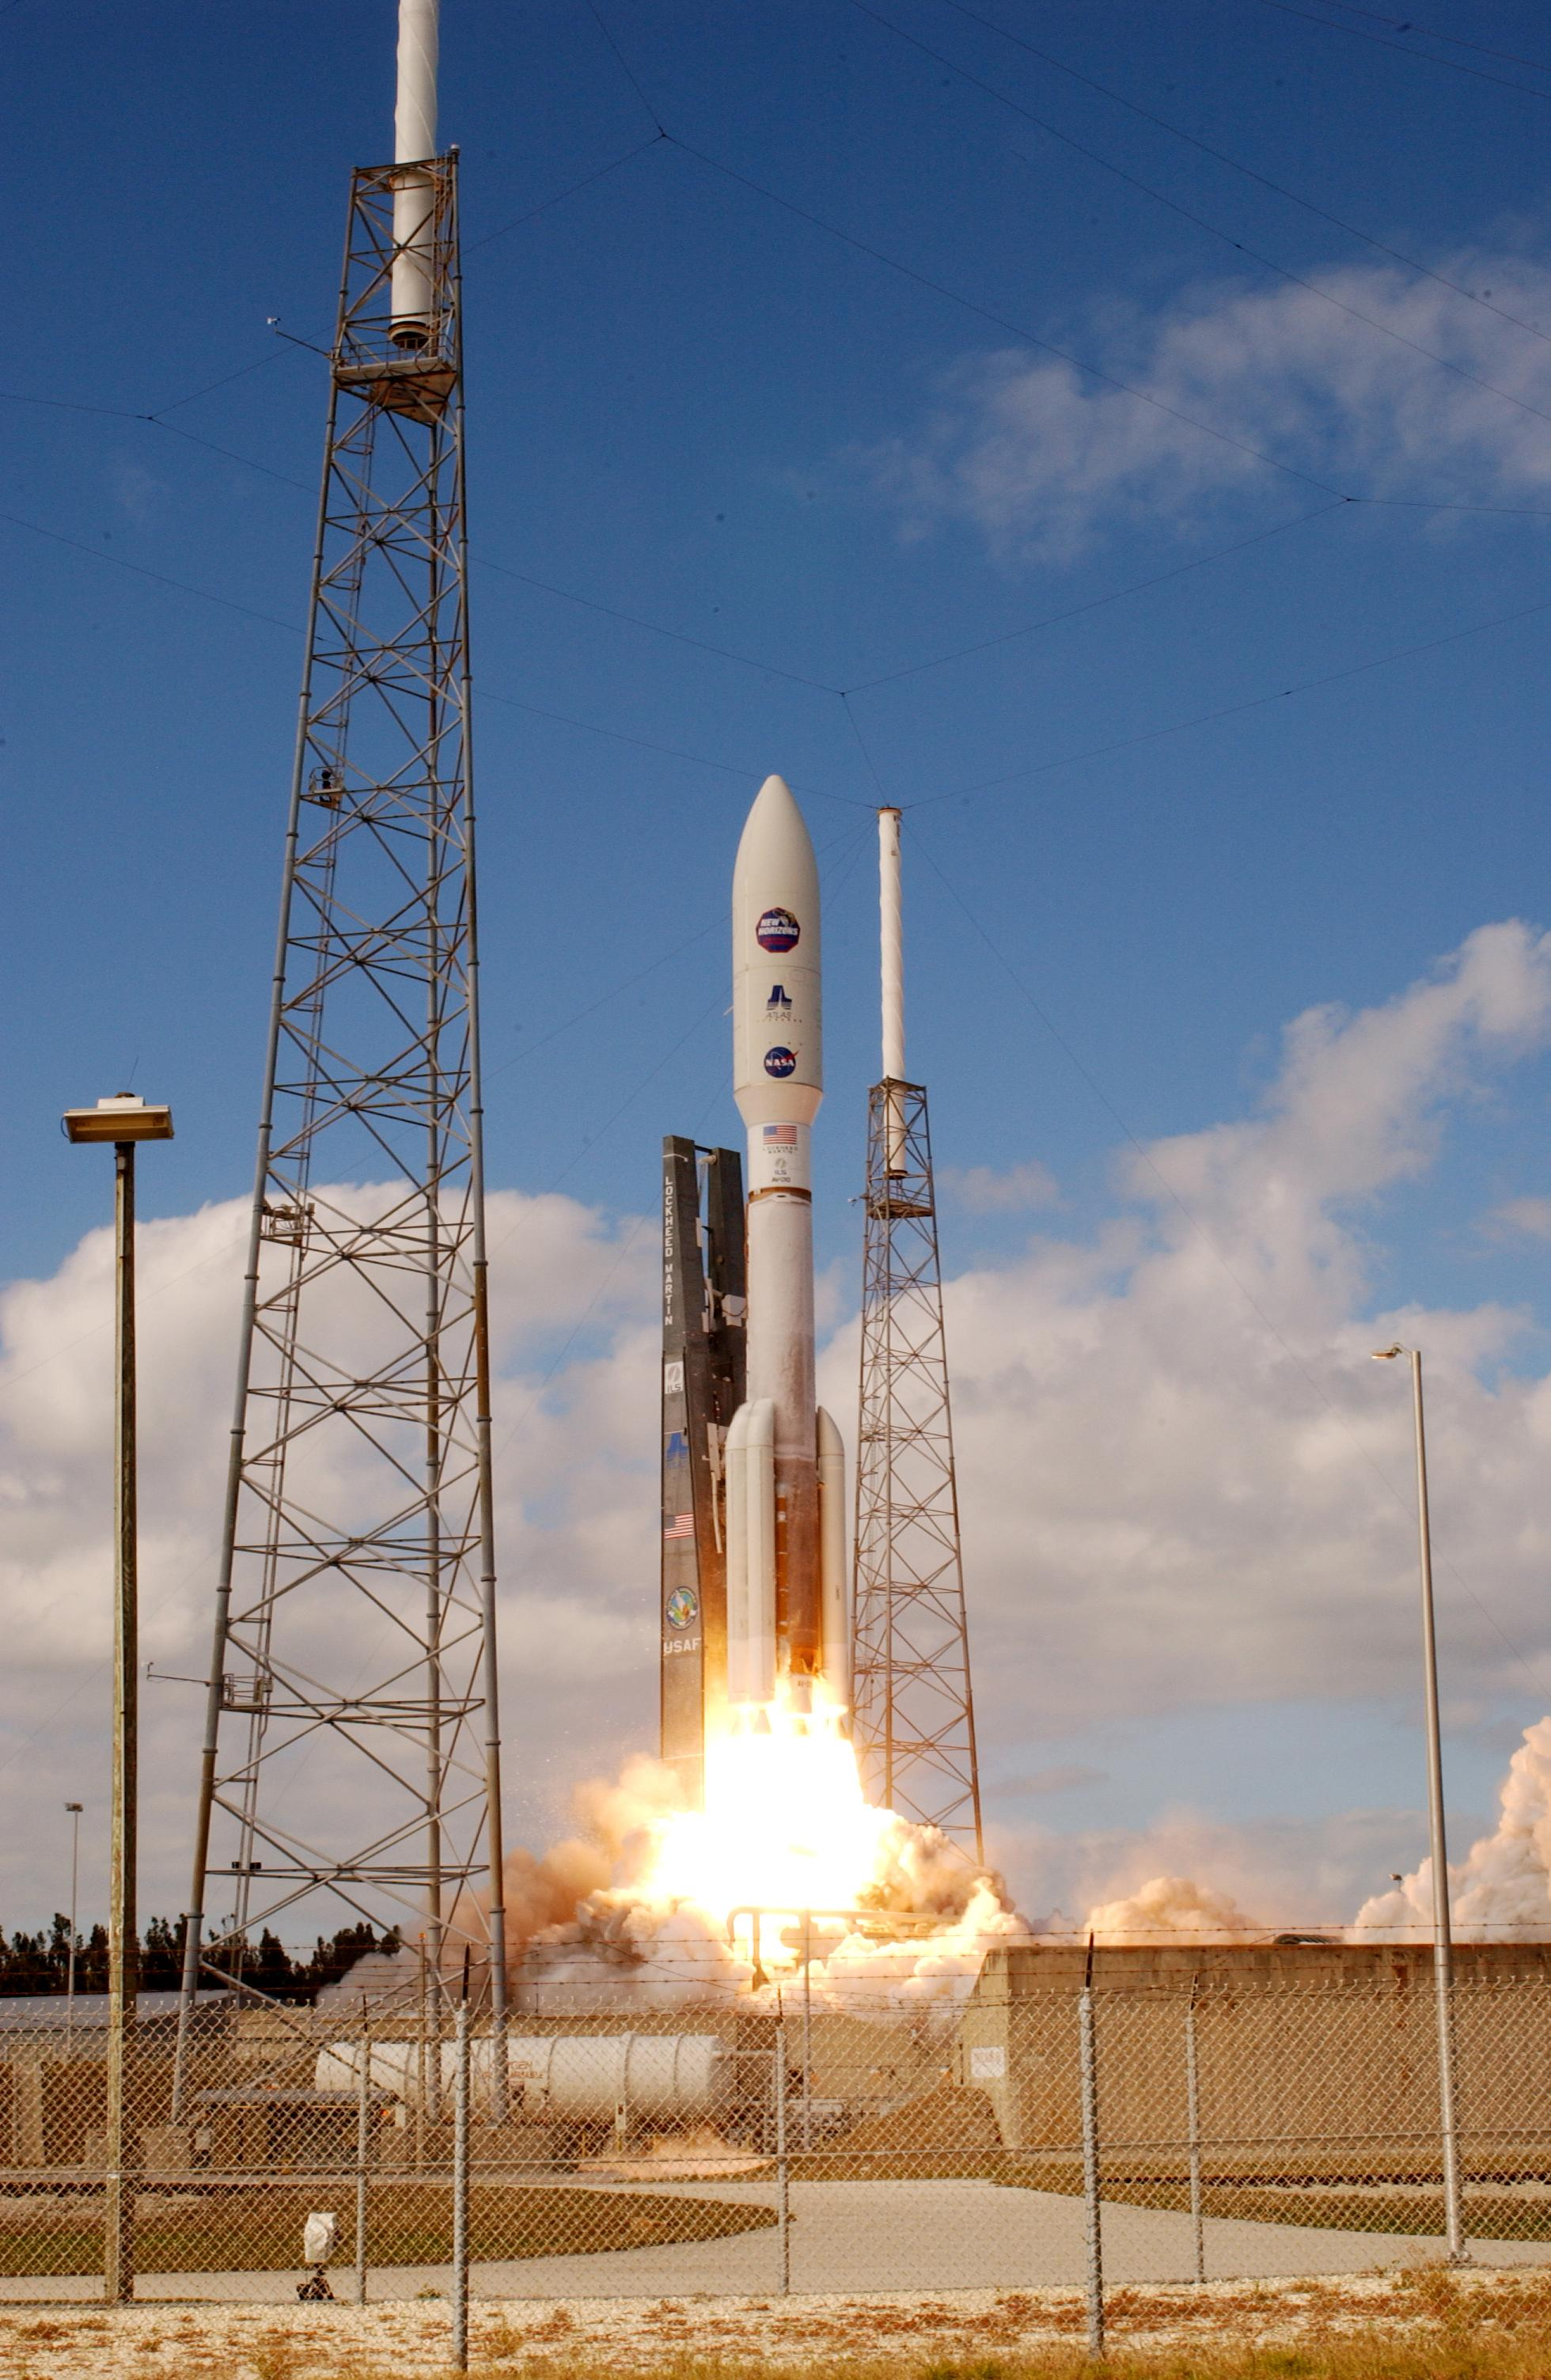 http://upload.wikimedia.org/wikipedia/commons/8/8c/New_Horizons_launch.jpg